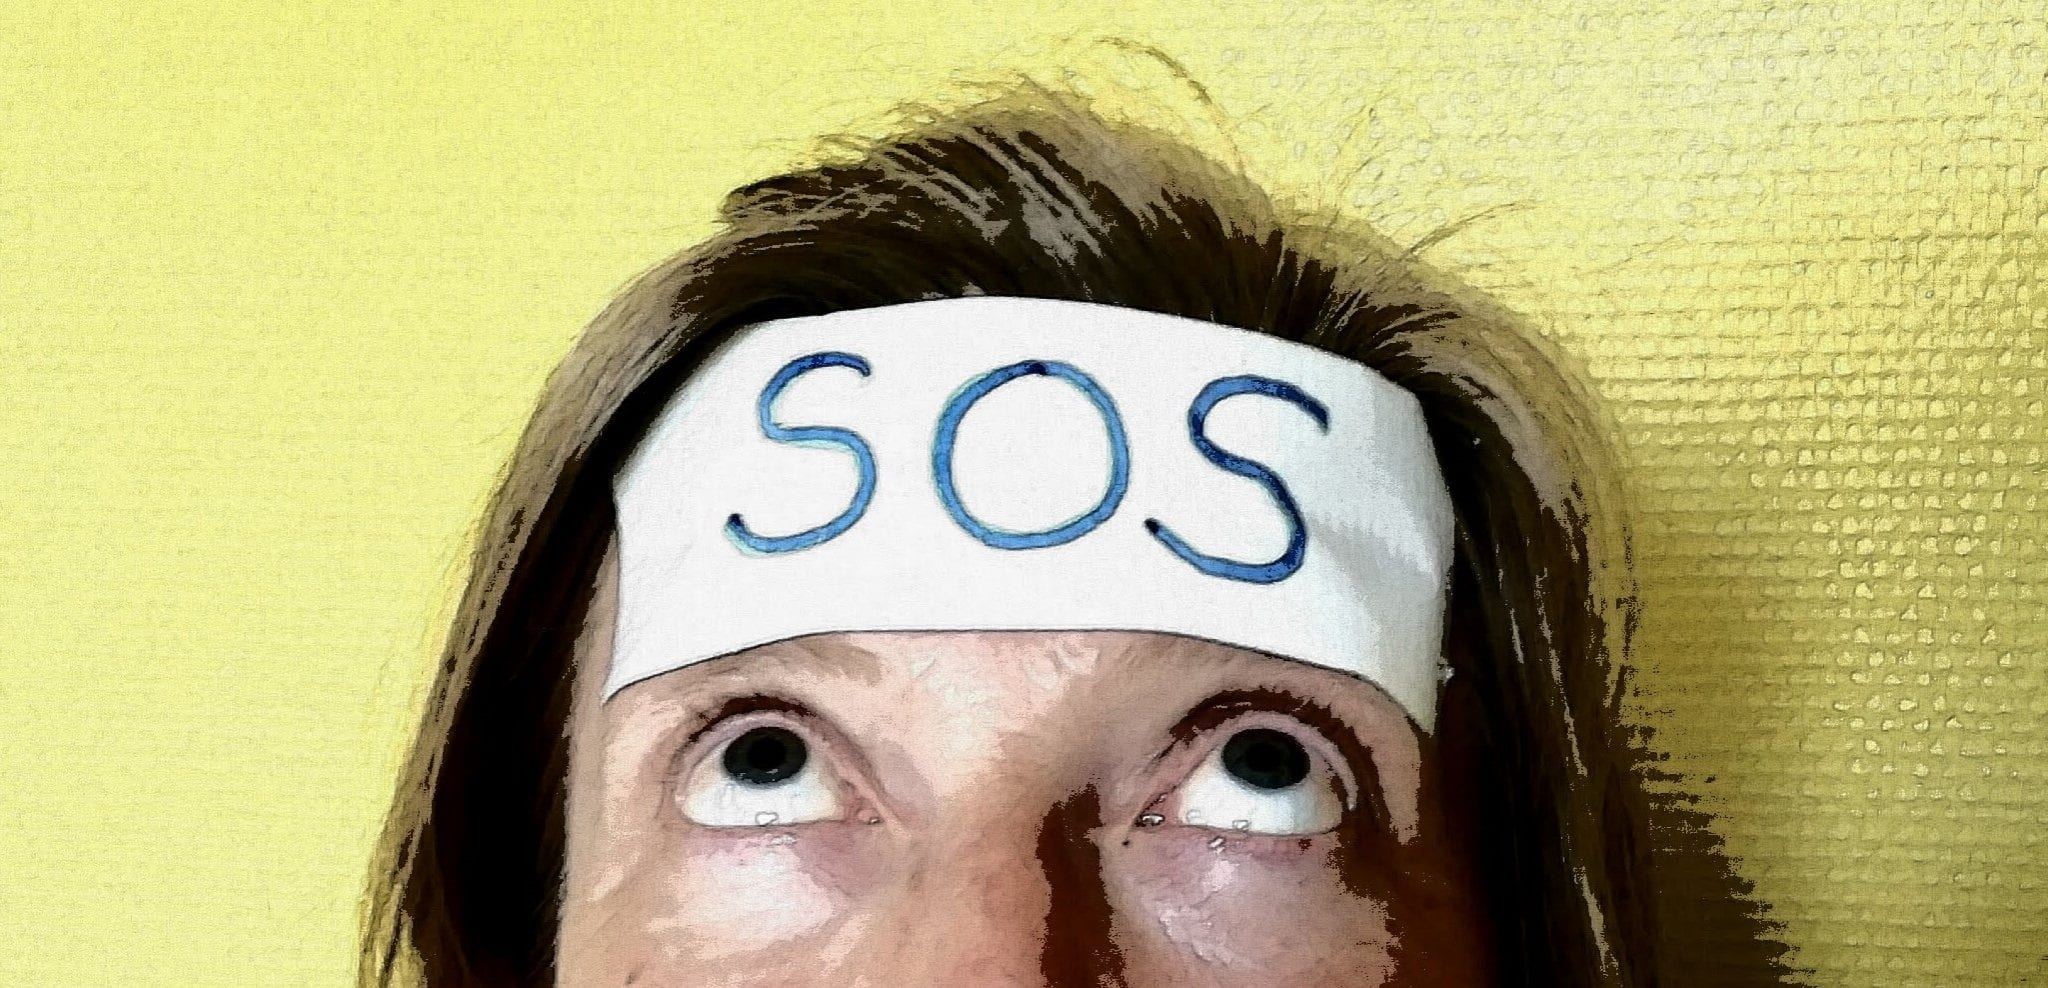 SOS on sticker on woman's forehead